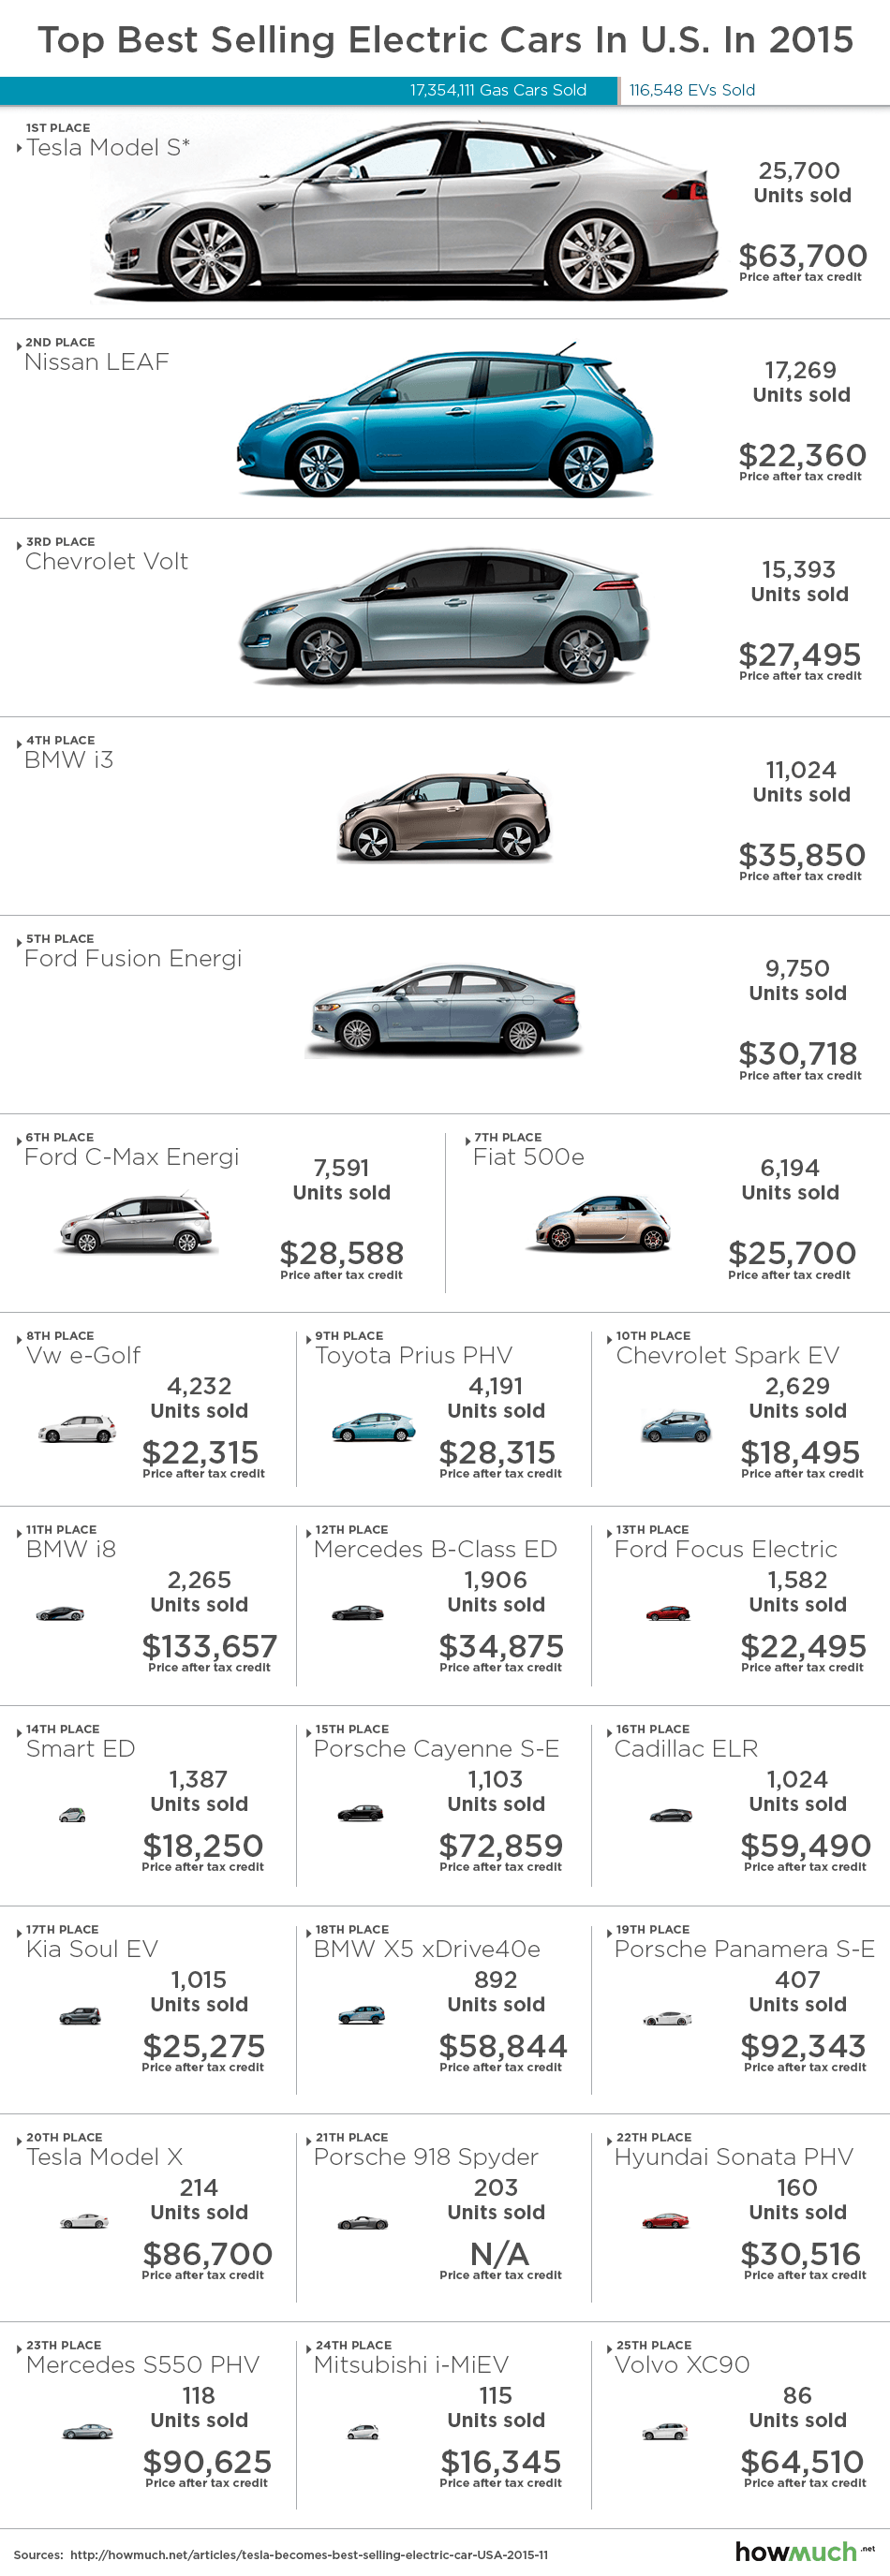 Top 25 Best Selling Electric Cars In U S In 2015